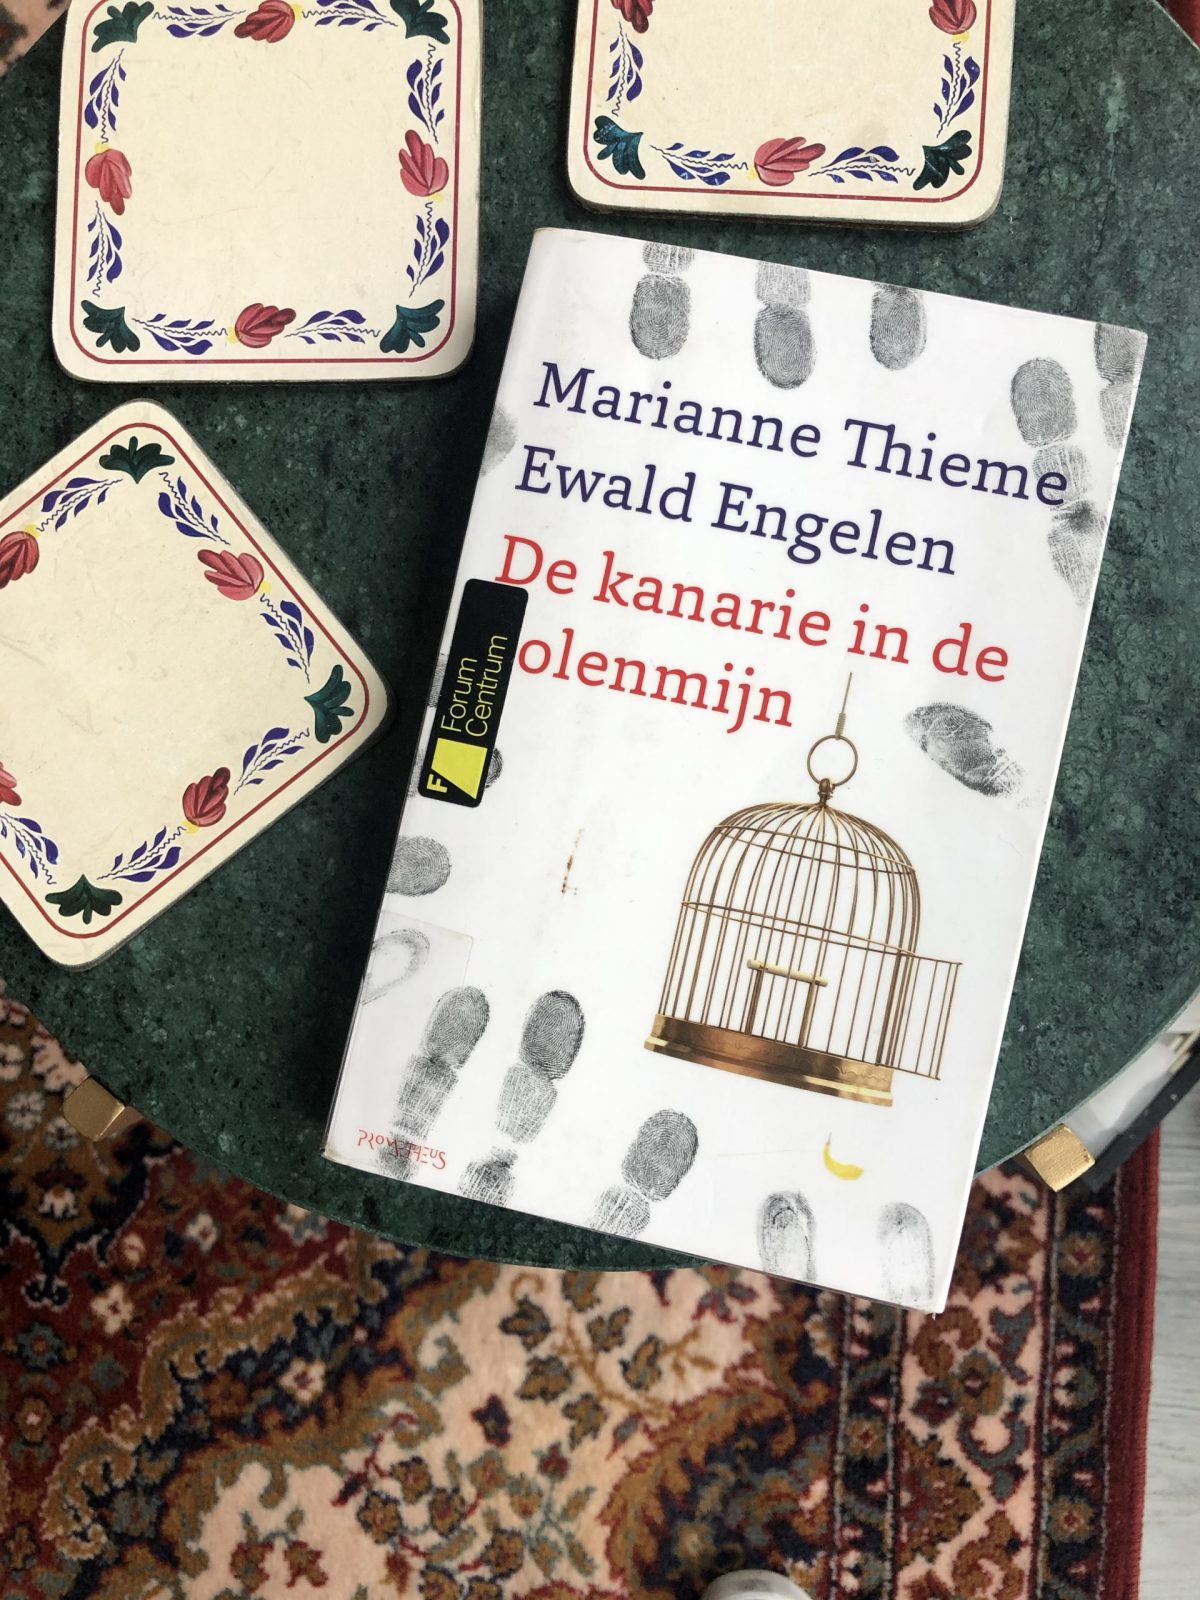 Book about economics and politics: De Kanarie in de Kolenmijn